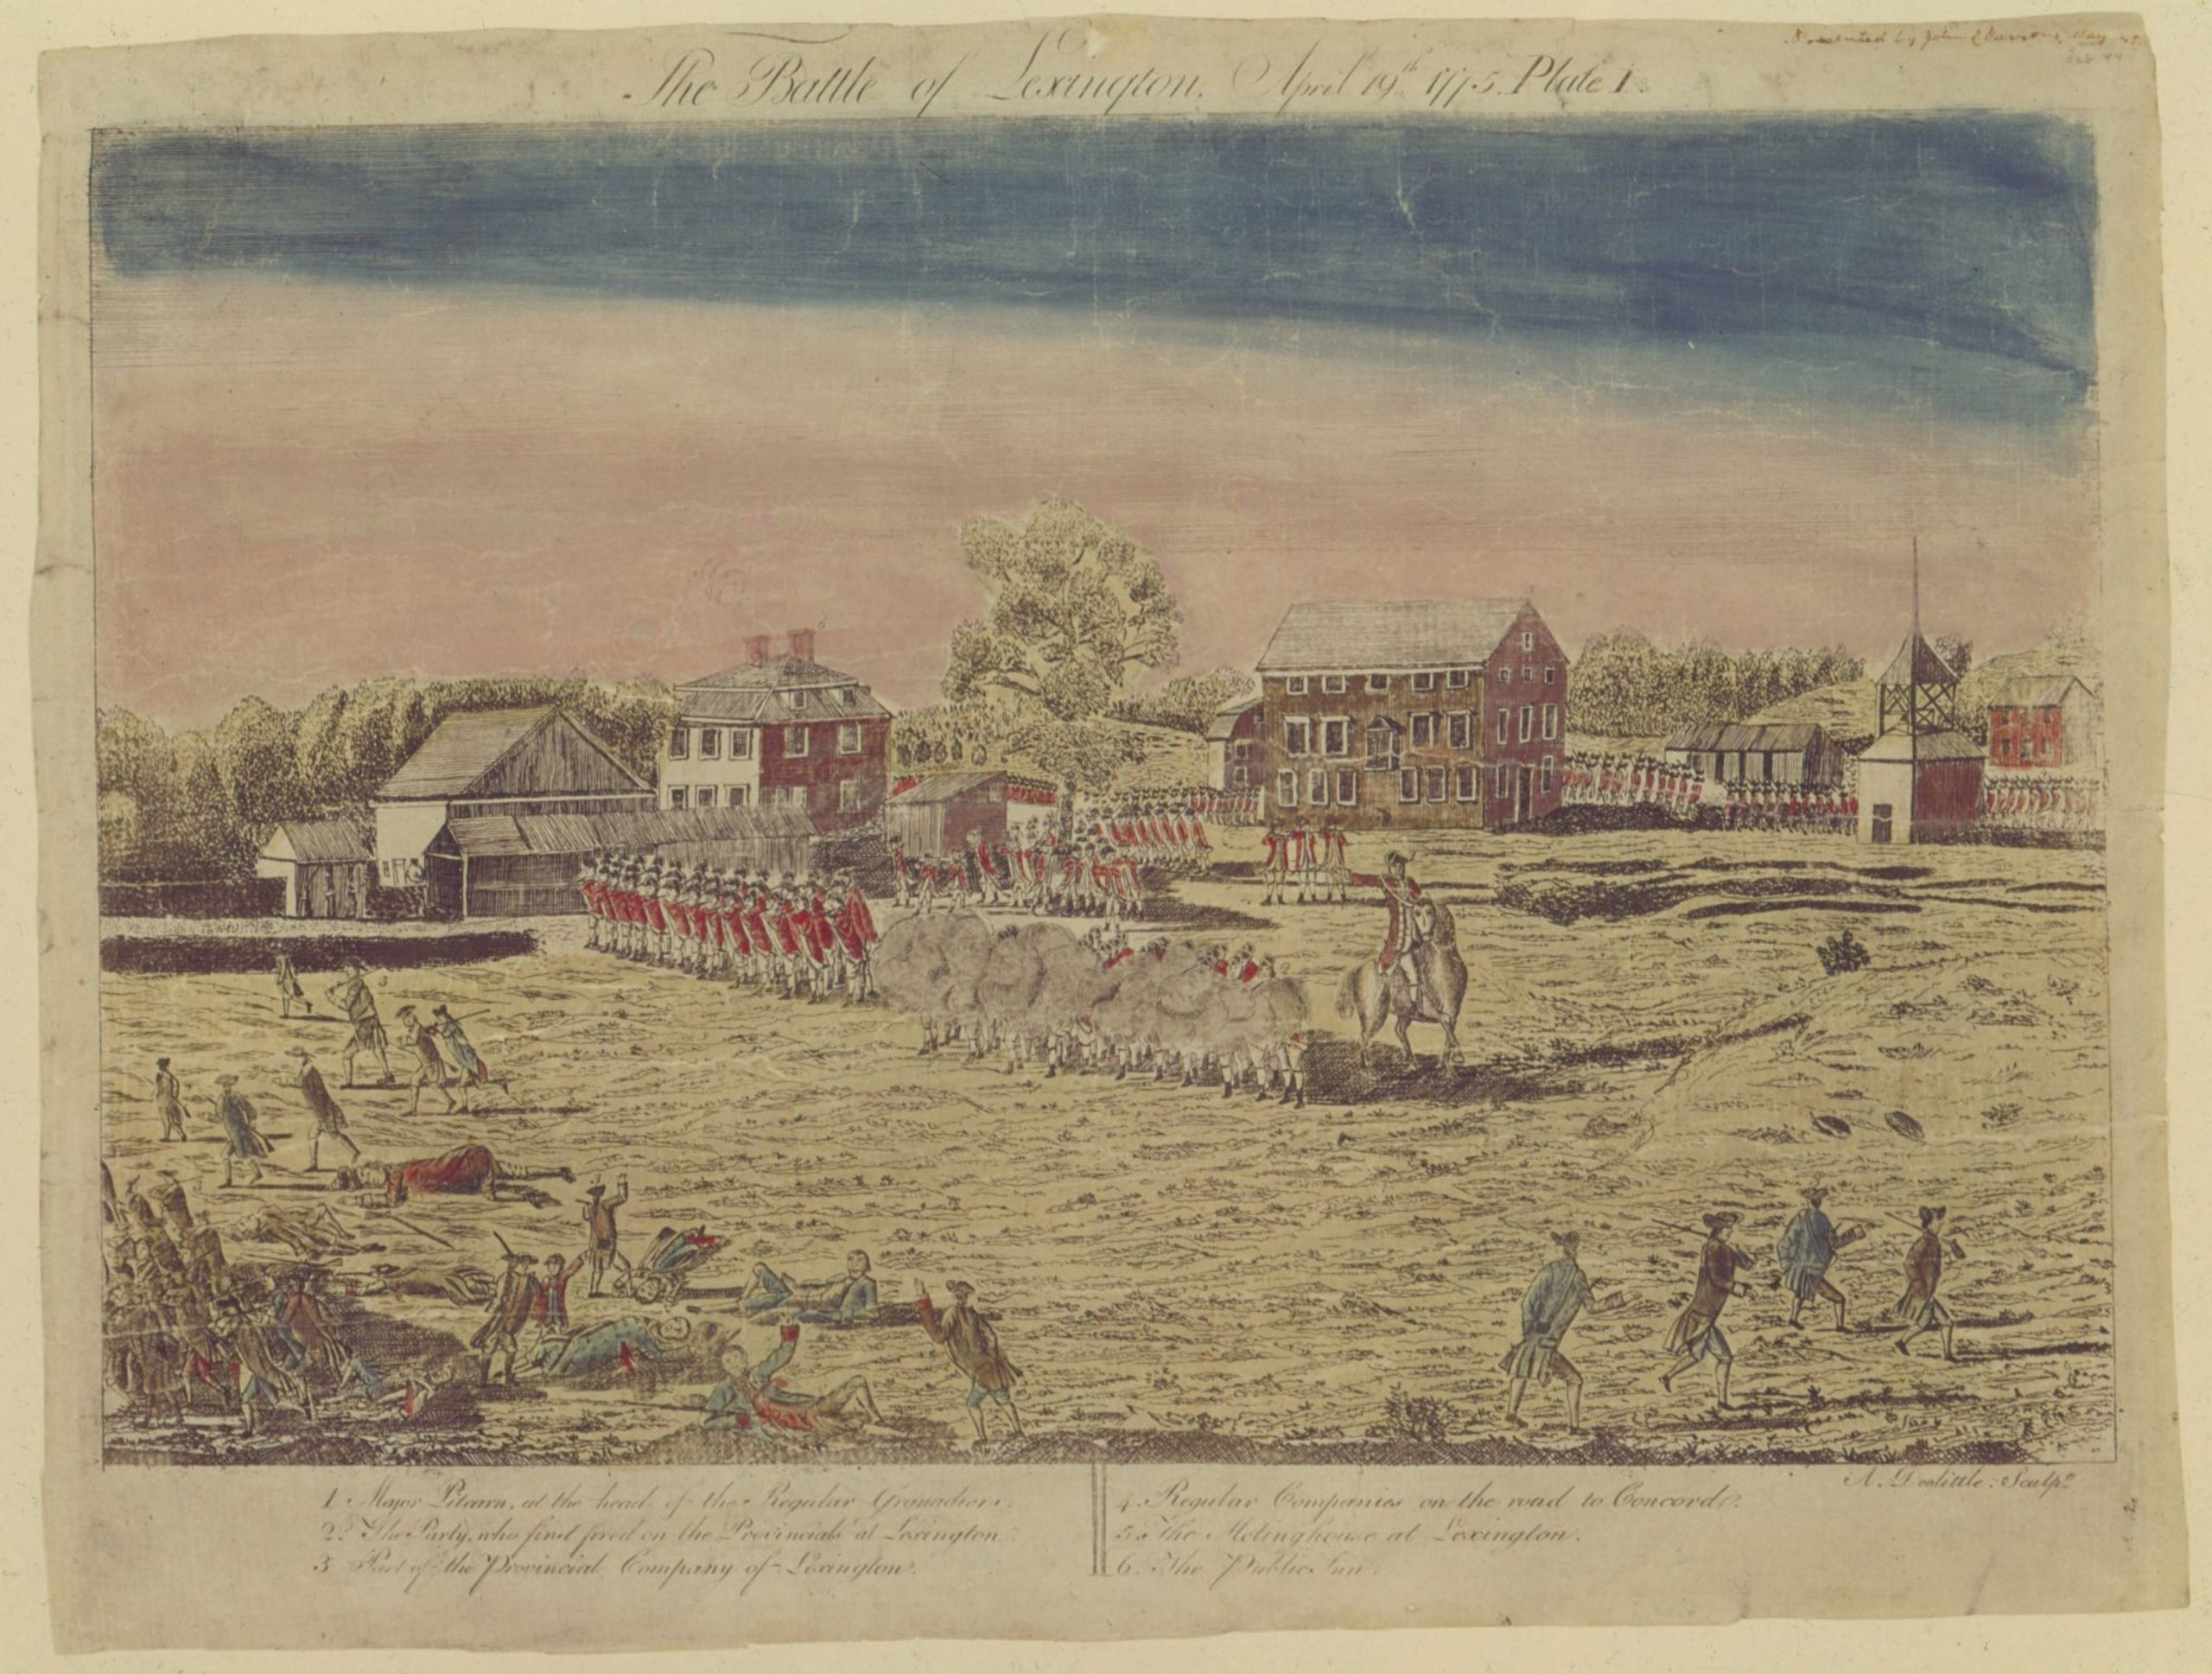 This engraving of the Battle of Lexington is one of ten great Revolutionary War prints.